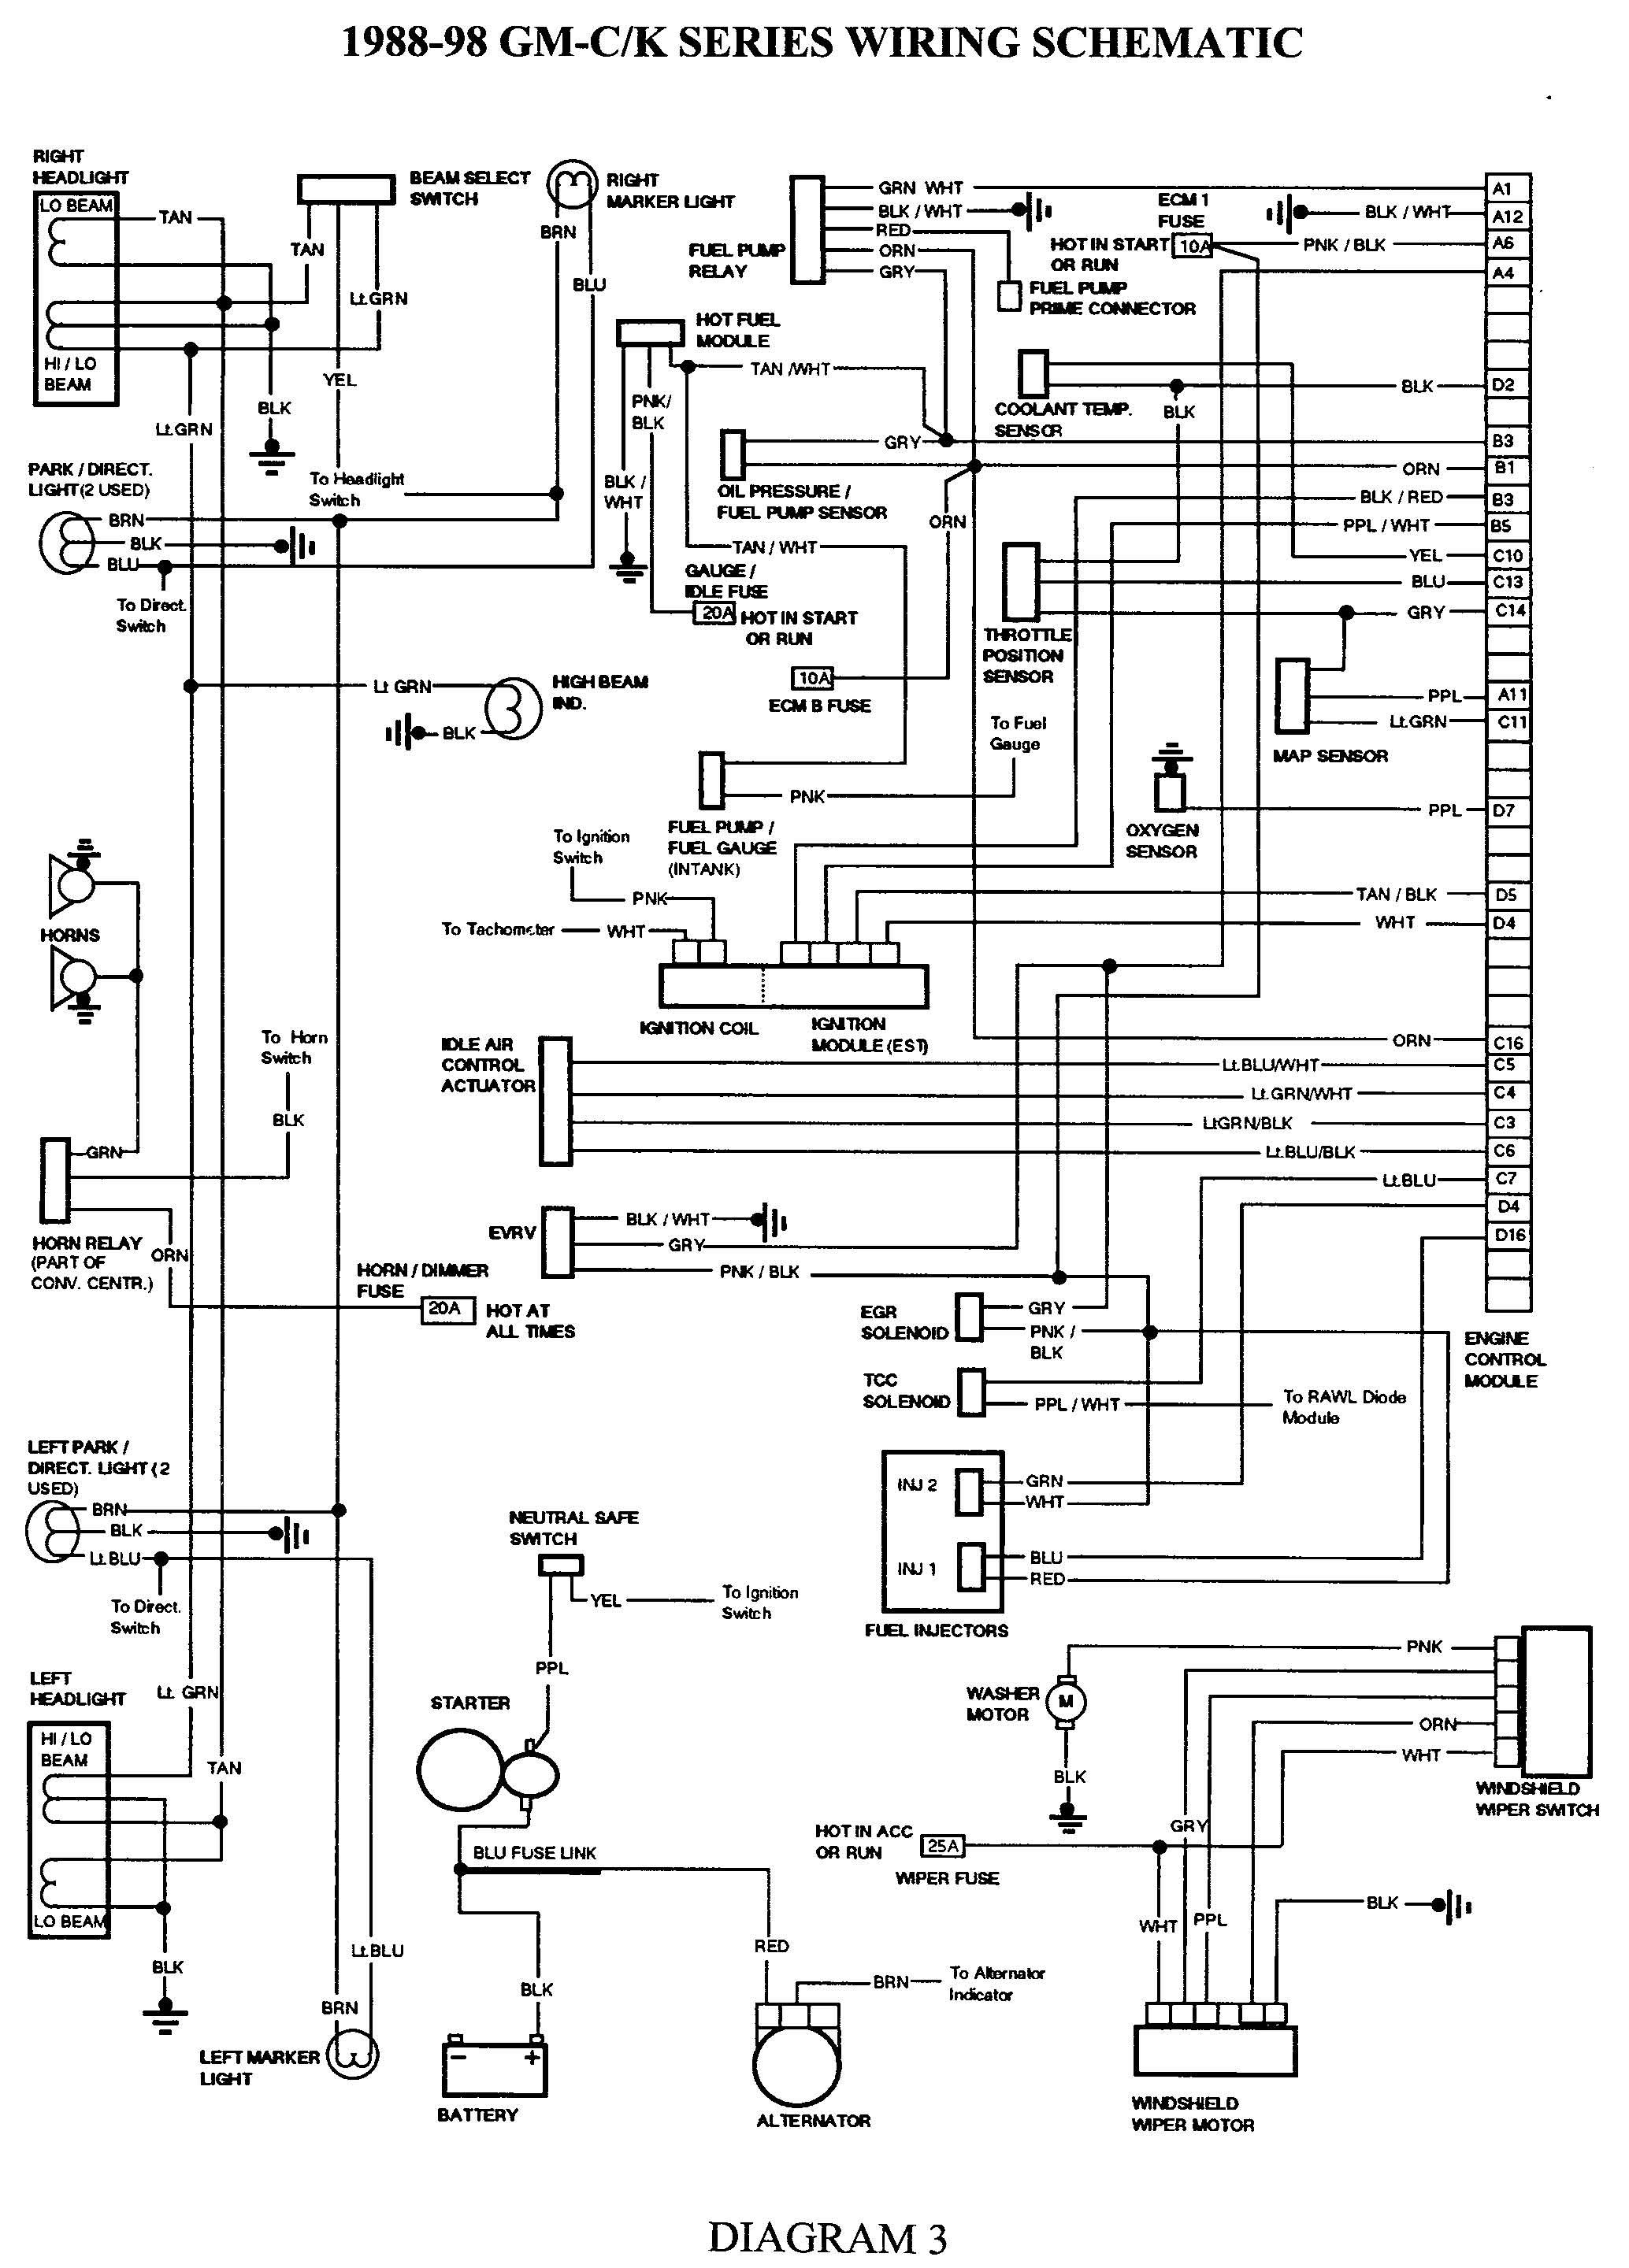 wiring diagram for 1988 chevy silverado radio radio wiring diagram for 2004 chevy silverado gmc truck wiring diagrams on gm wiring harness diagram 88 ...